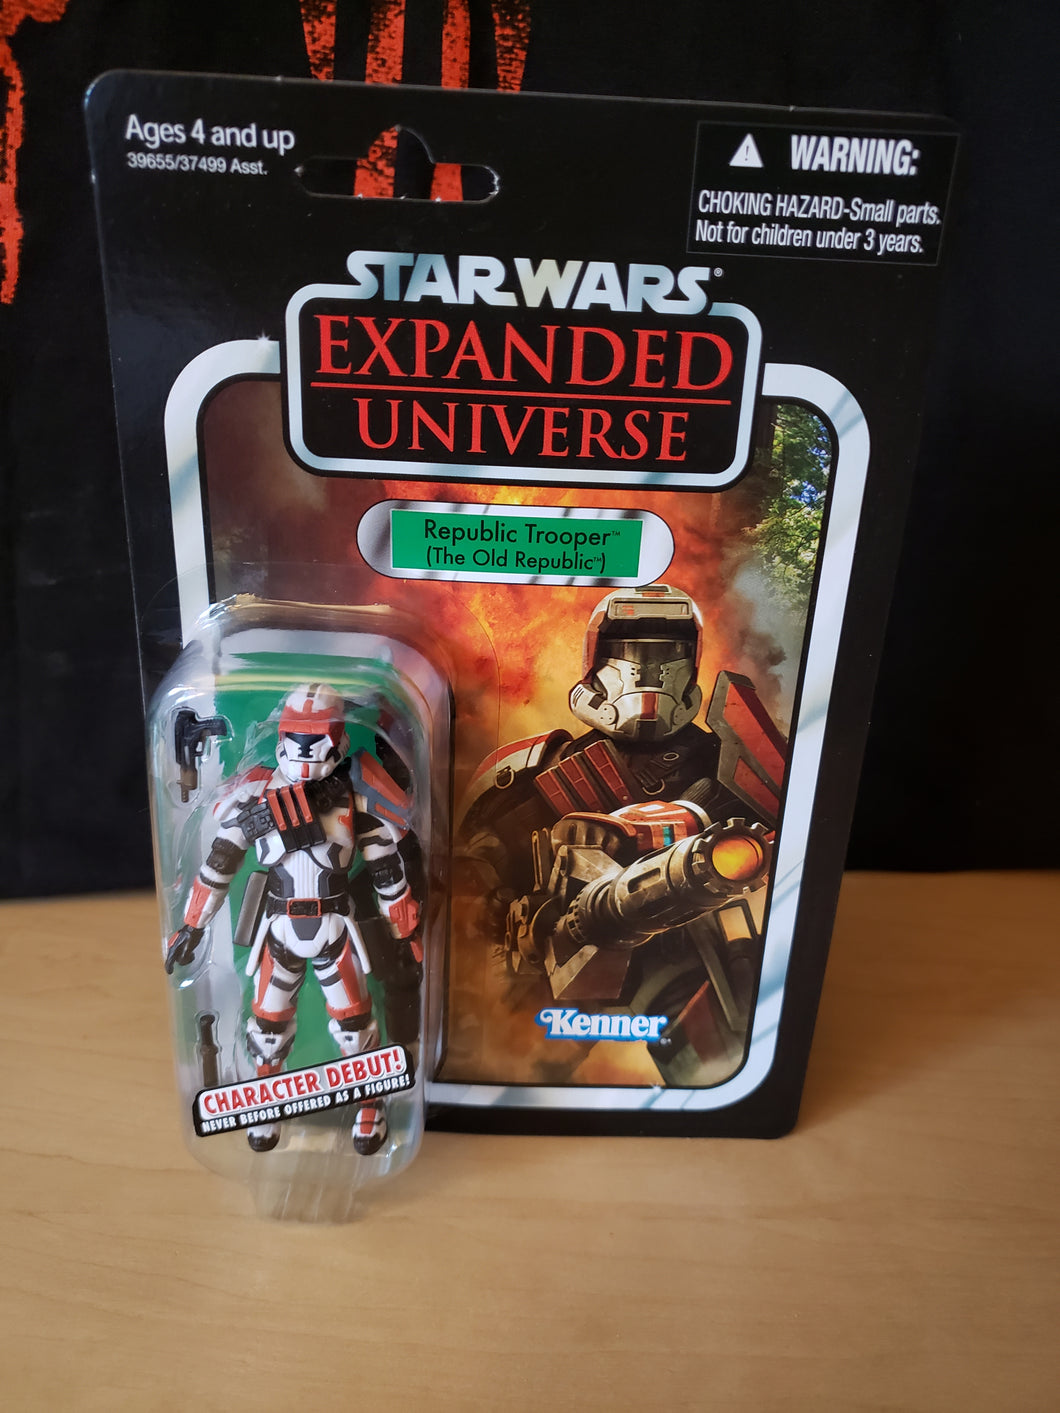 2012 Star Wars TVC The Expanded Universe - Republic Trooper (The Old Republic) VC113